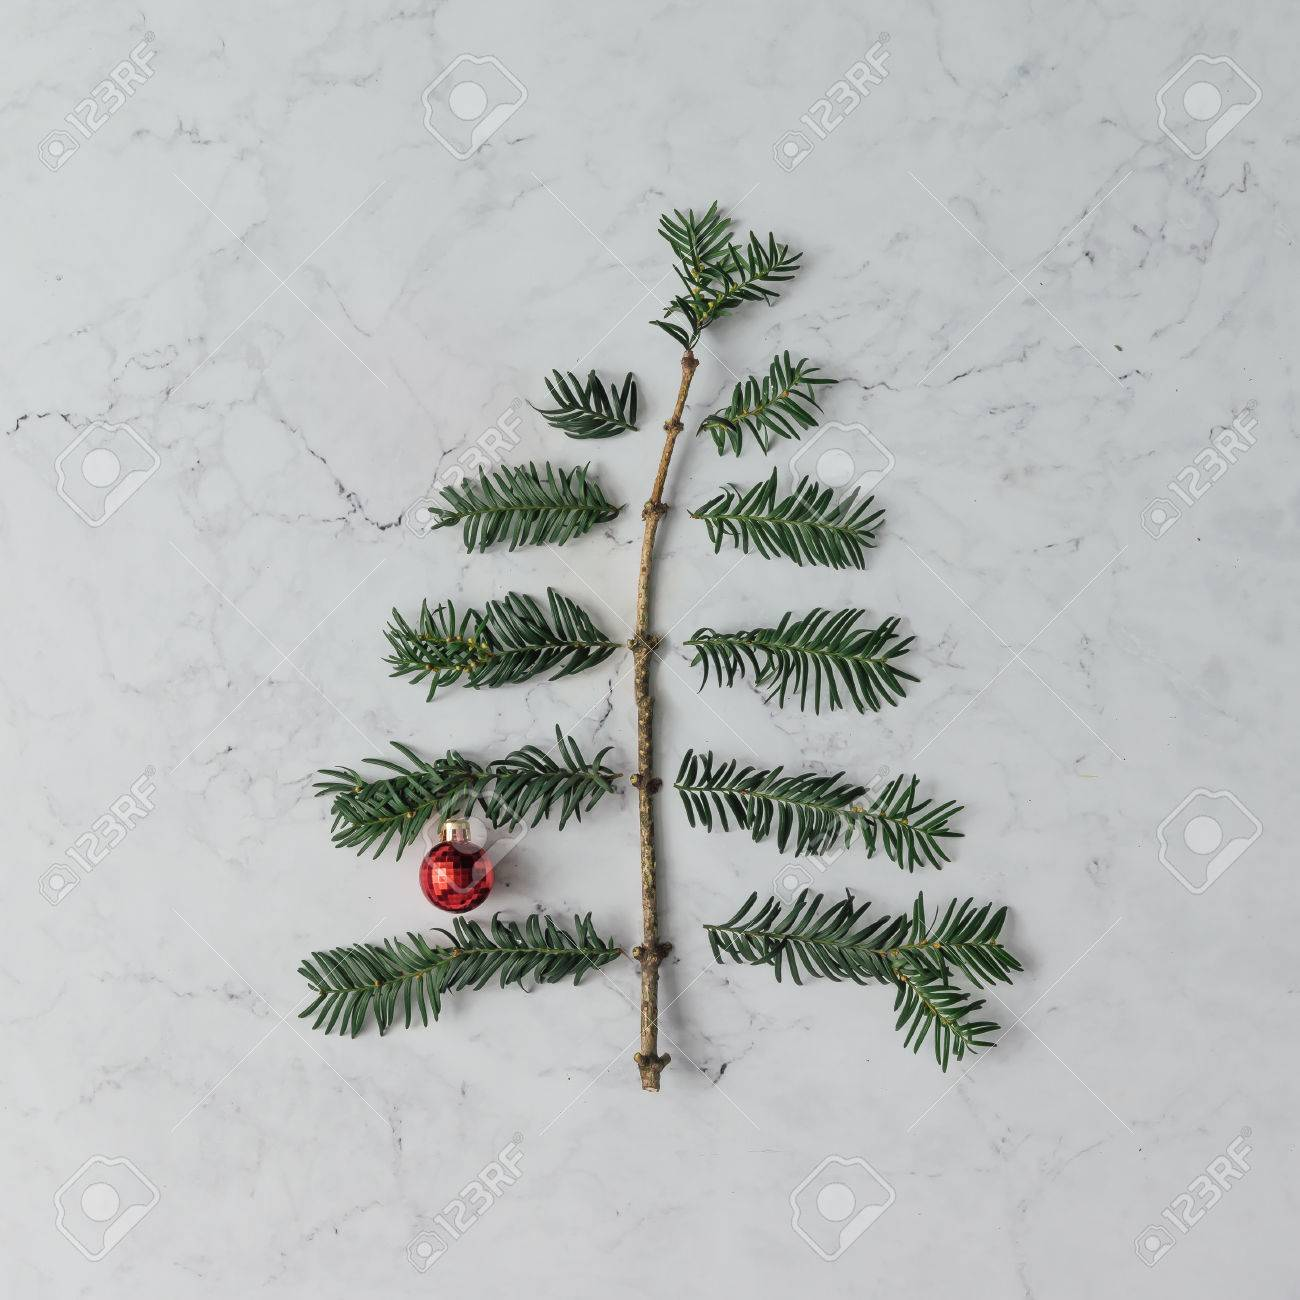 New Years Foliage >> Christmas Tree Made Of Winter Foliage And New Year Decoration